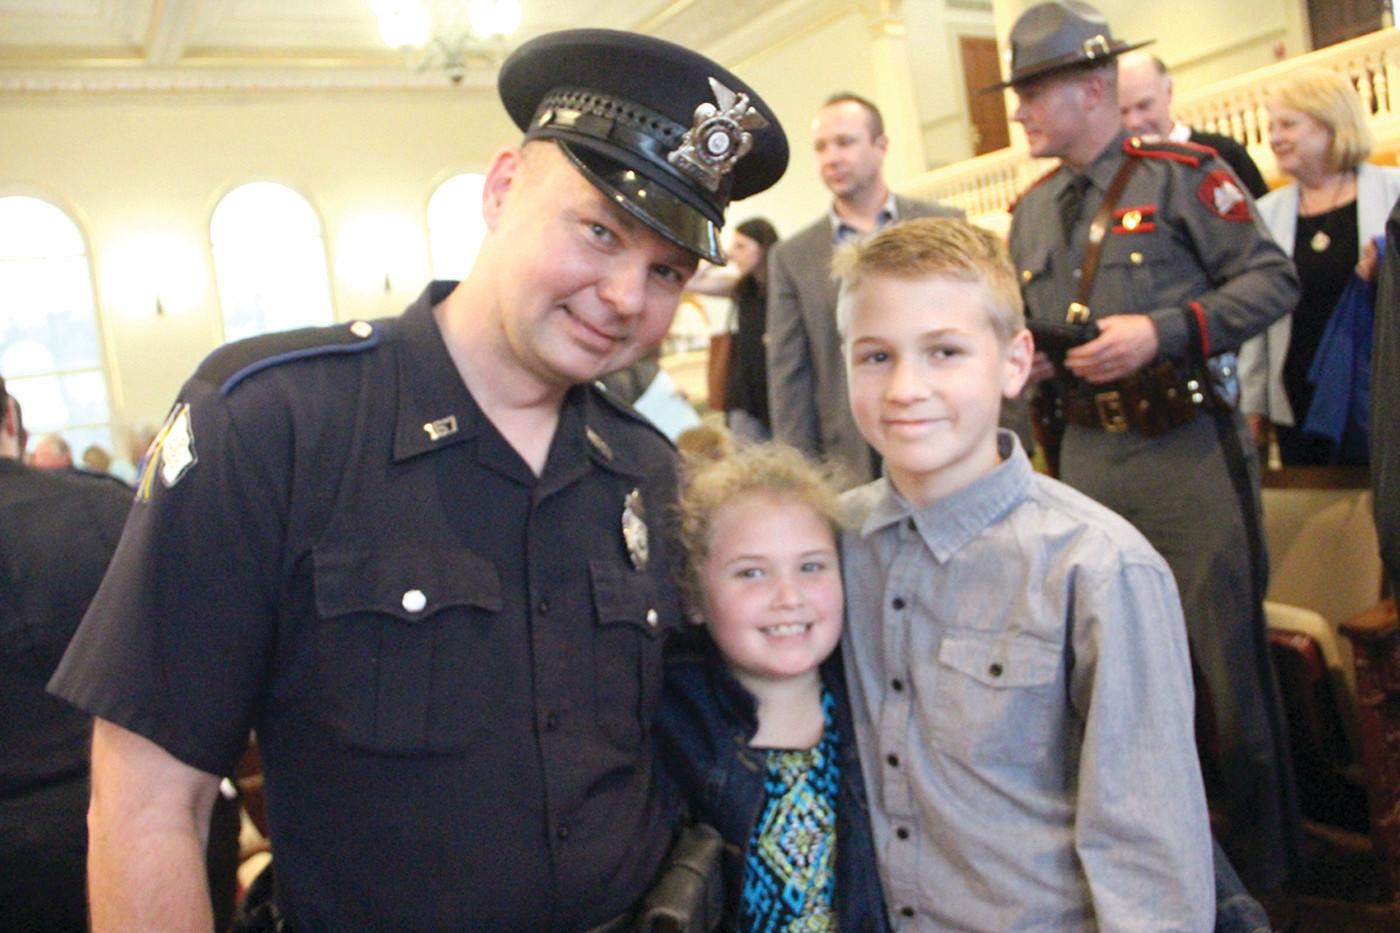 PROUD KIDS: Officer Tomas Bogusz who received the lifesaving award is congratulated by his children Maya and Olek at the conclusion of the ceremony.